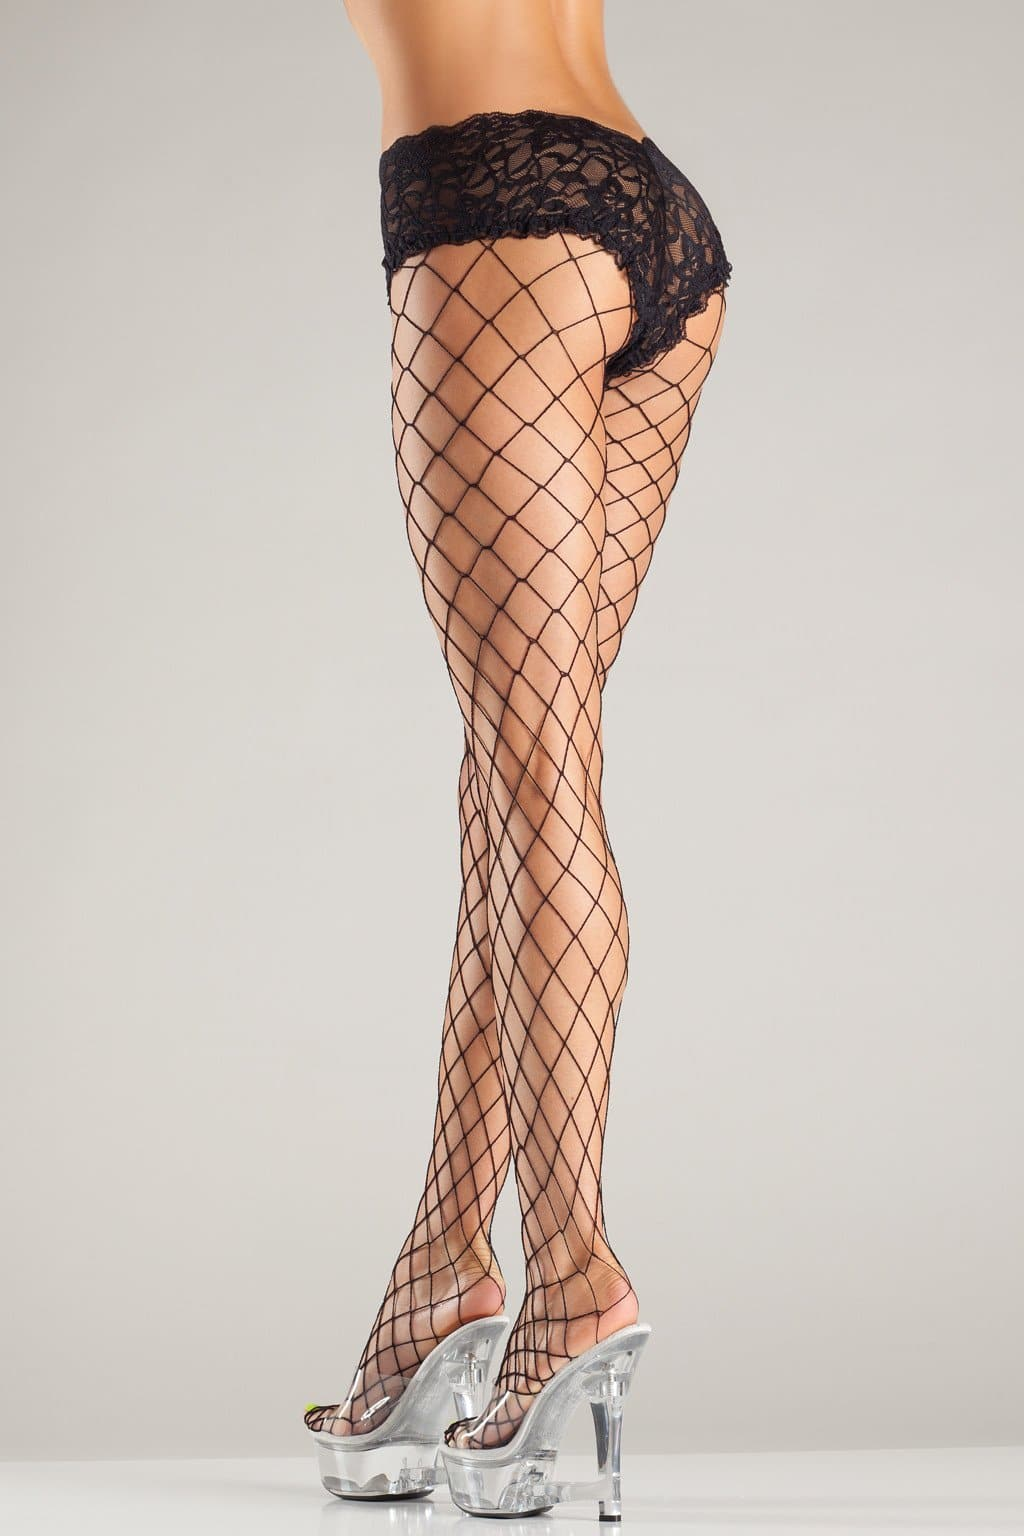 Be Wicked BW05Q Fence Net Tights With Lace Boyshorts Top